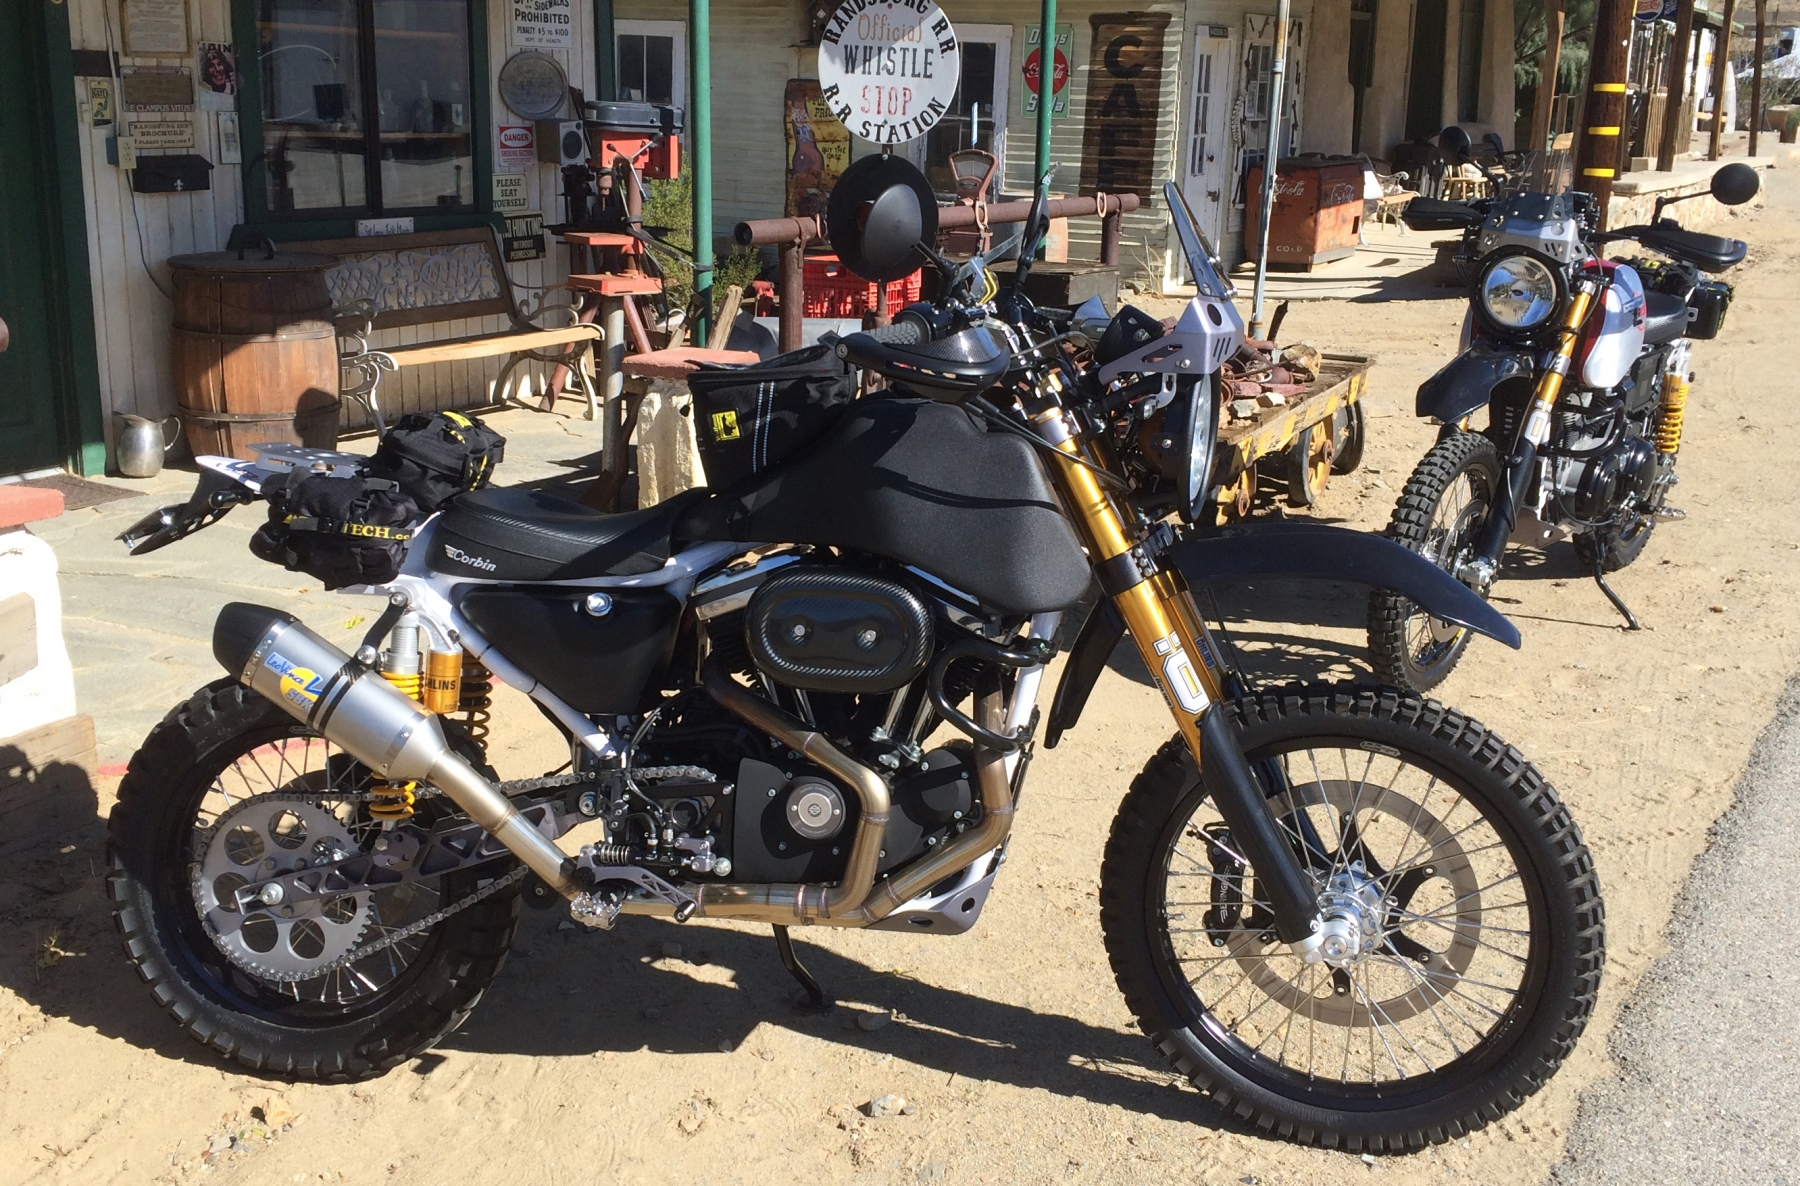 Two SC3 Adv Dual Sports in the Mojave Desert. Photo by Jim Carducci.